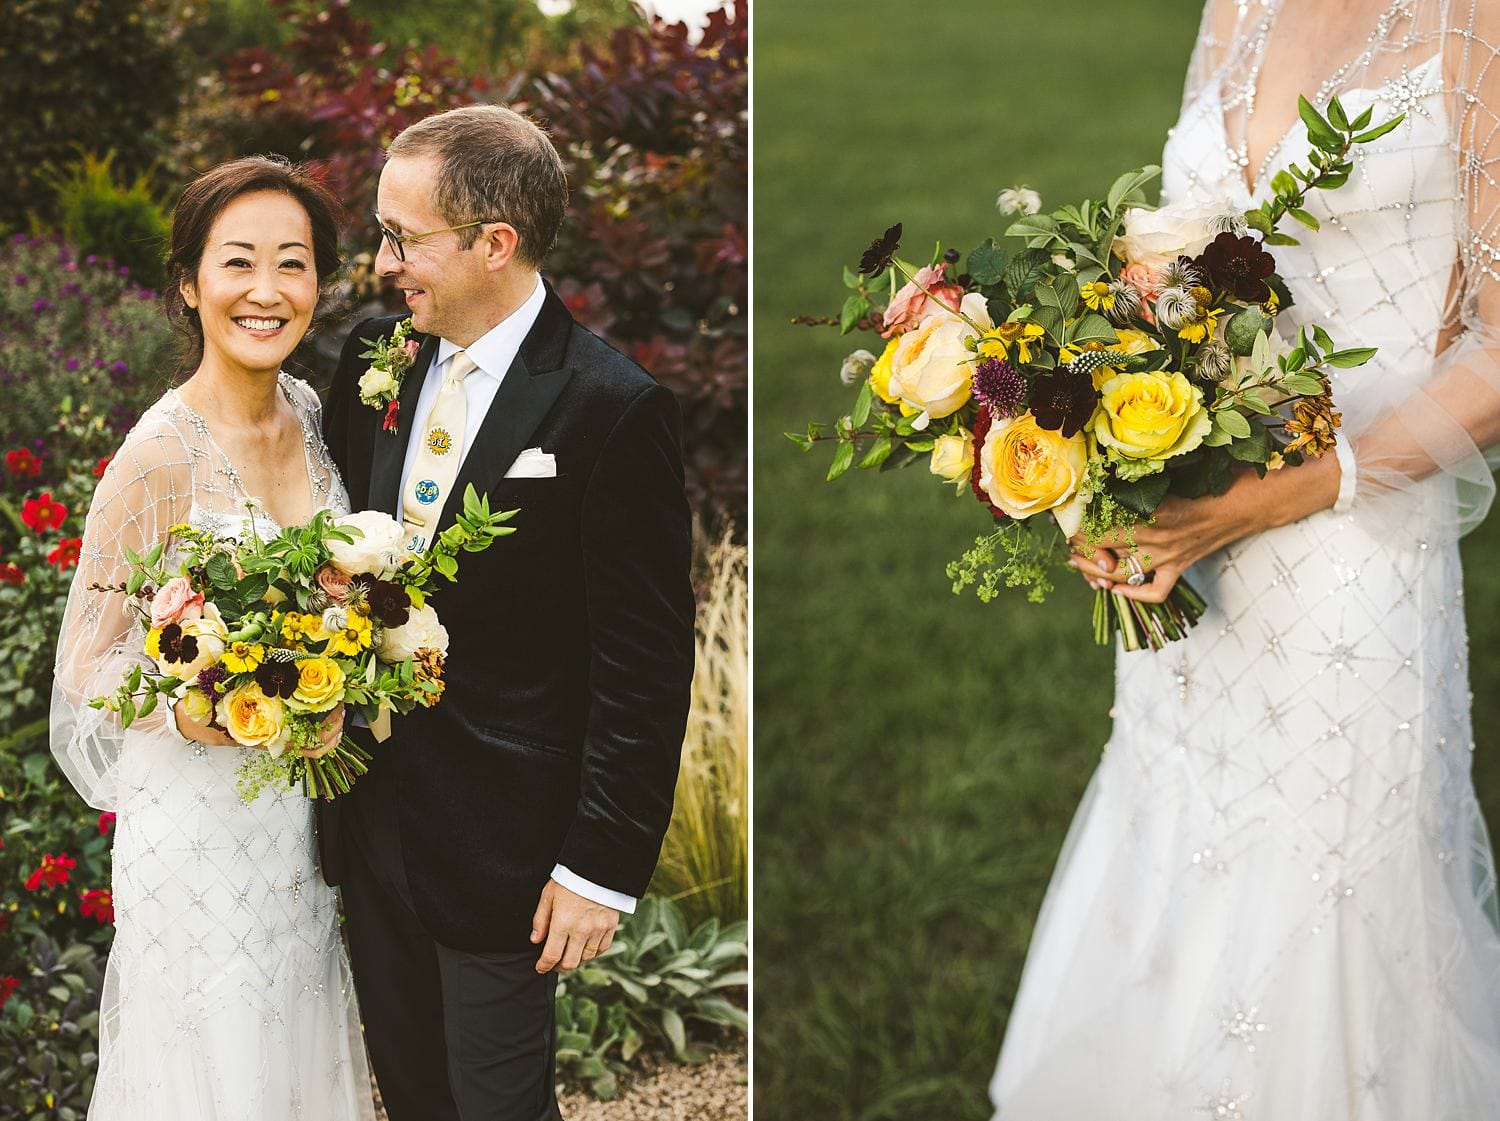 Wedding bouquet styling ideas St Giles House